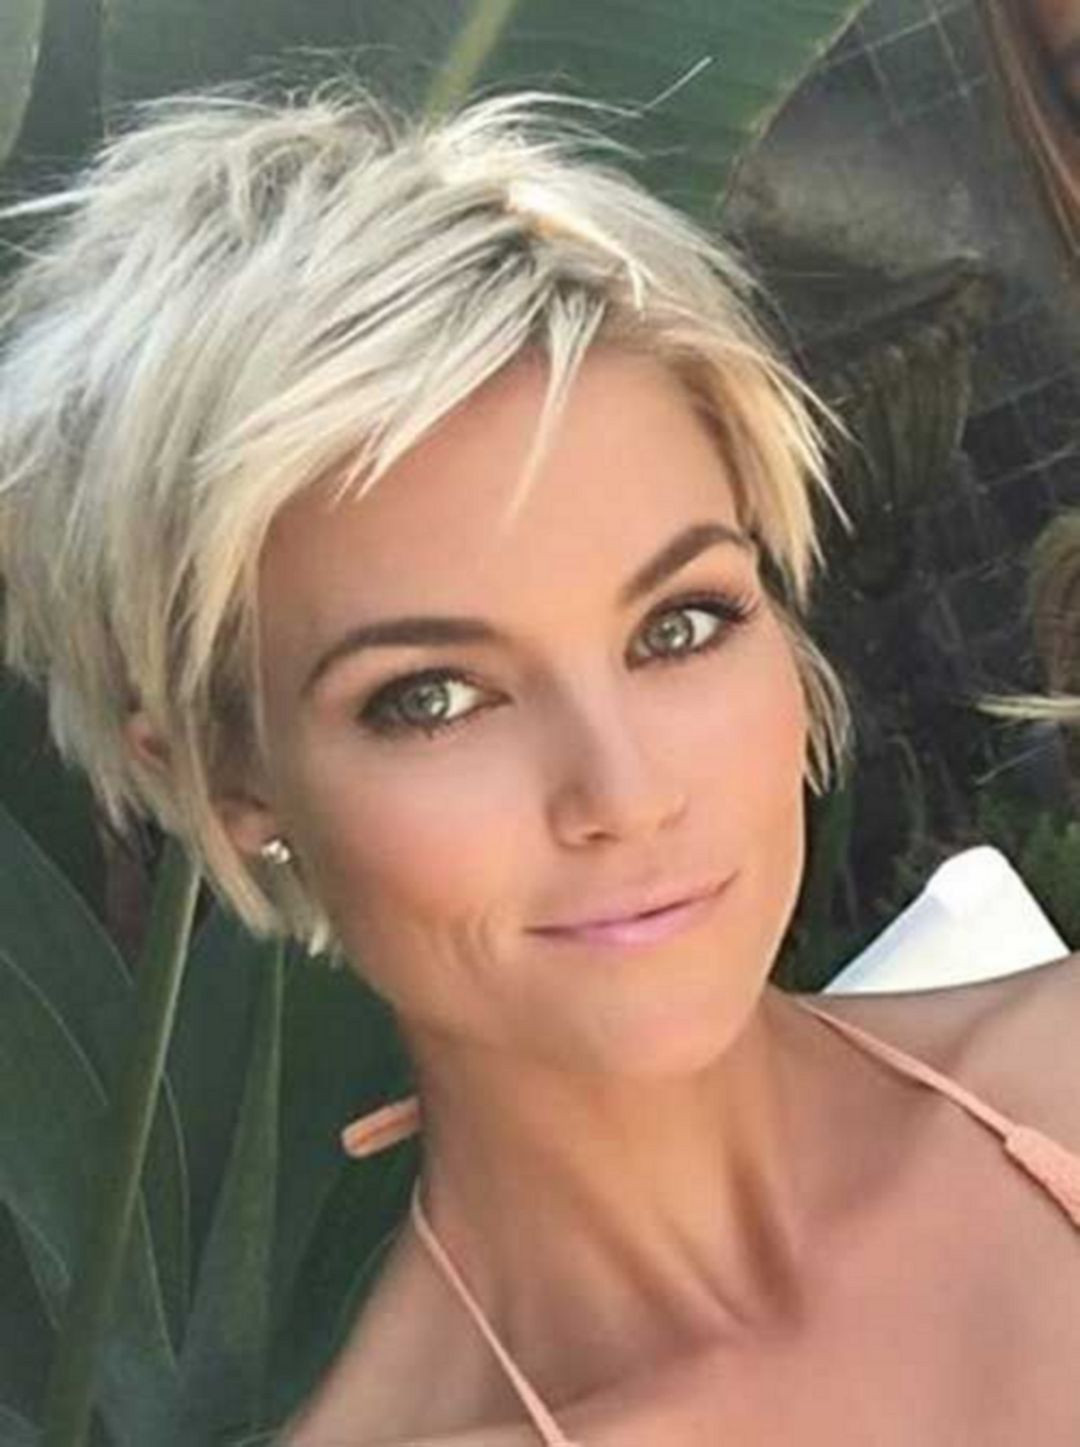 LATEST BEAUTIFUL SHORT AND LONG CUTS PIXIE FOR ATTRACTIVE WOMEN THIS SESSION 2019 2